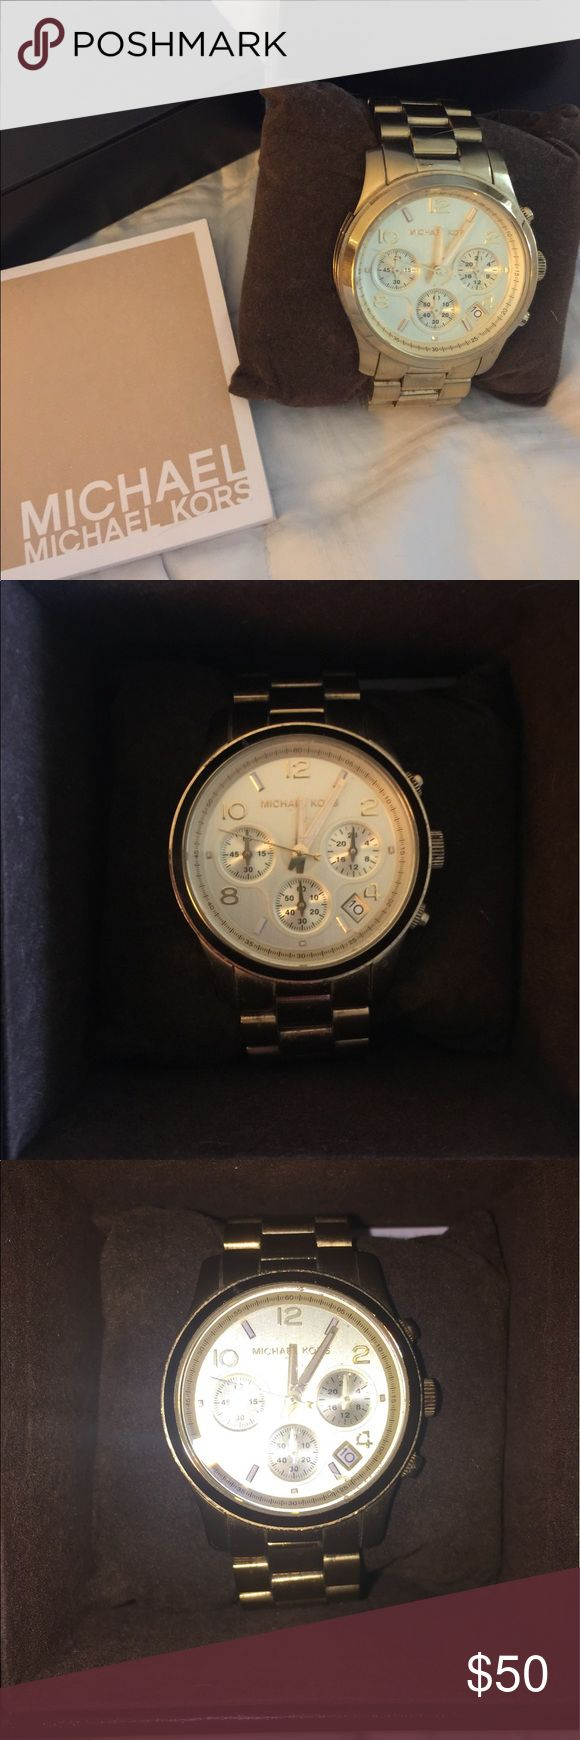 Michael Kors MK5055 Runway Chronograph Watch Pre loved authentic Michael Kors style MK5055 runway chronograph gold oversized ladies watch. This is a pre owned pre loved piece and shows signs of wear. Please see photos. The watch needs a battery and I no longer have the extra link. Box and operation book included. Statement-making yet feminine!  • Oversized Watch  • Push Clasp  • 38mm Case  • Water Resistant Up To 5 ATM  • 7.25 inches Michael Kors Accessories Watches